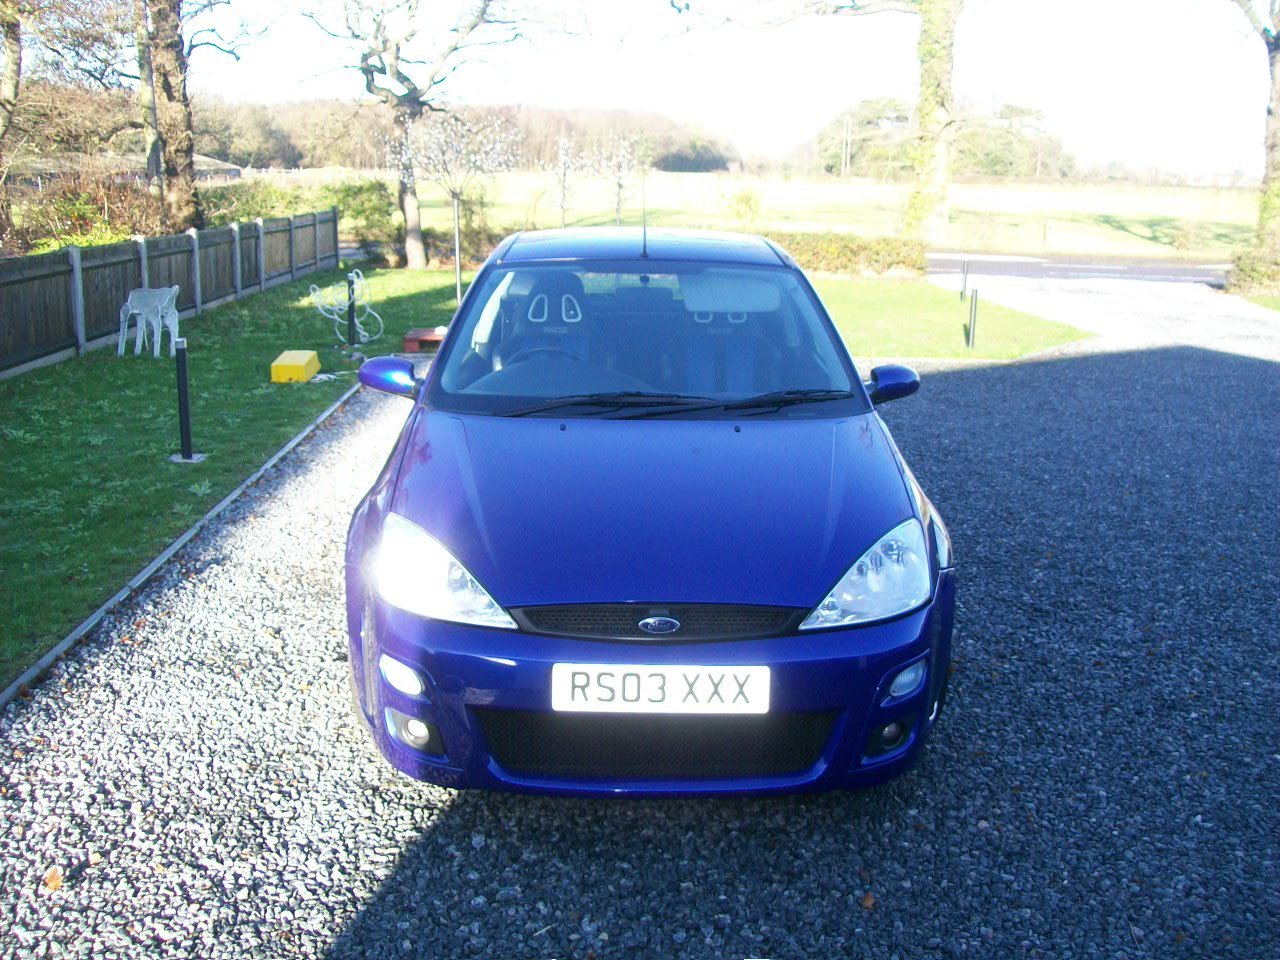 2003 Ford focus rs mk1 SOLD (picture 3 of 4)